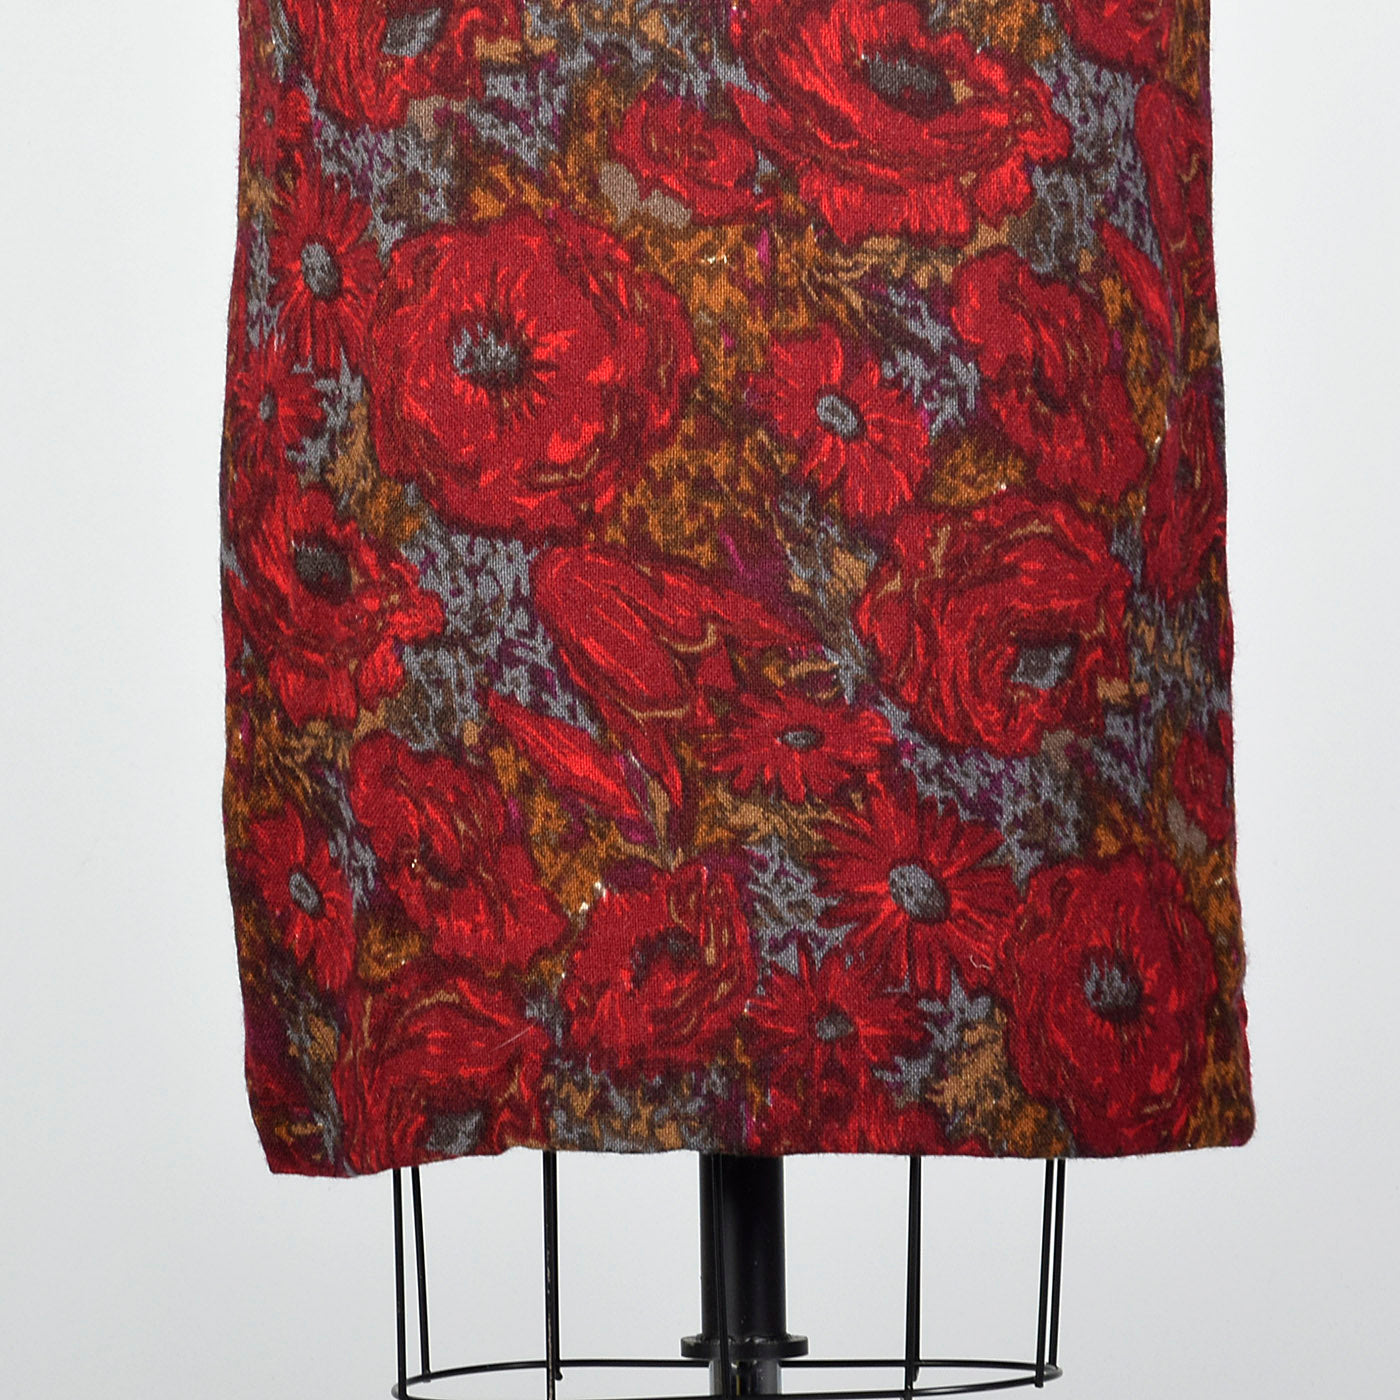 1950s Red Floral Print Dress with Great Silhouette